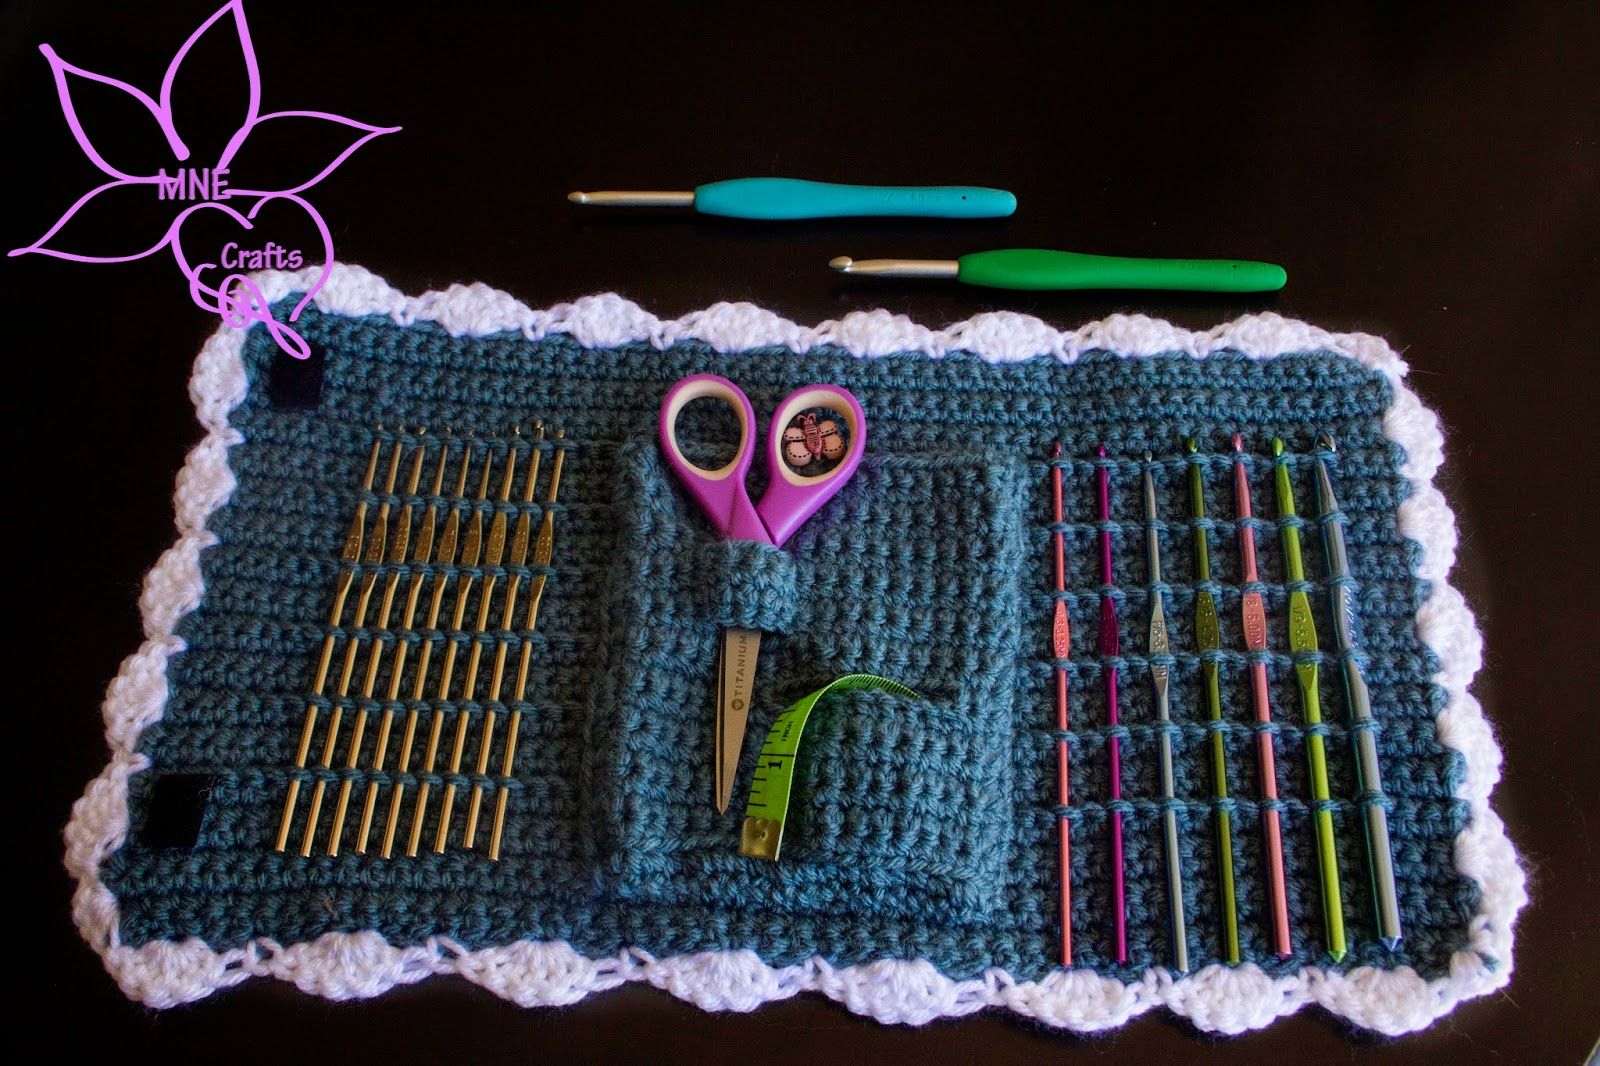 Mne crafts random pattern find crochet hook case blogger mne crafts random pattern find crochet hook case bankloansurffo Image collections